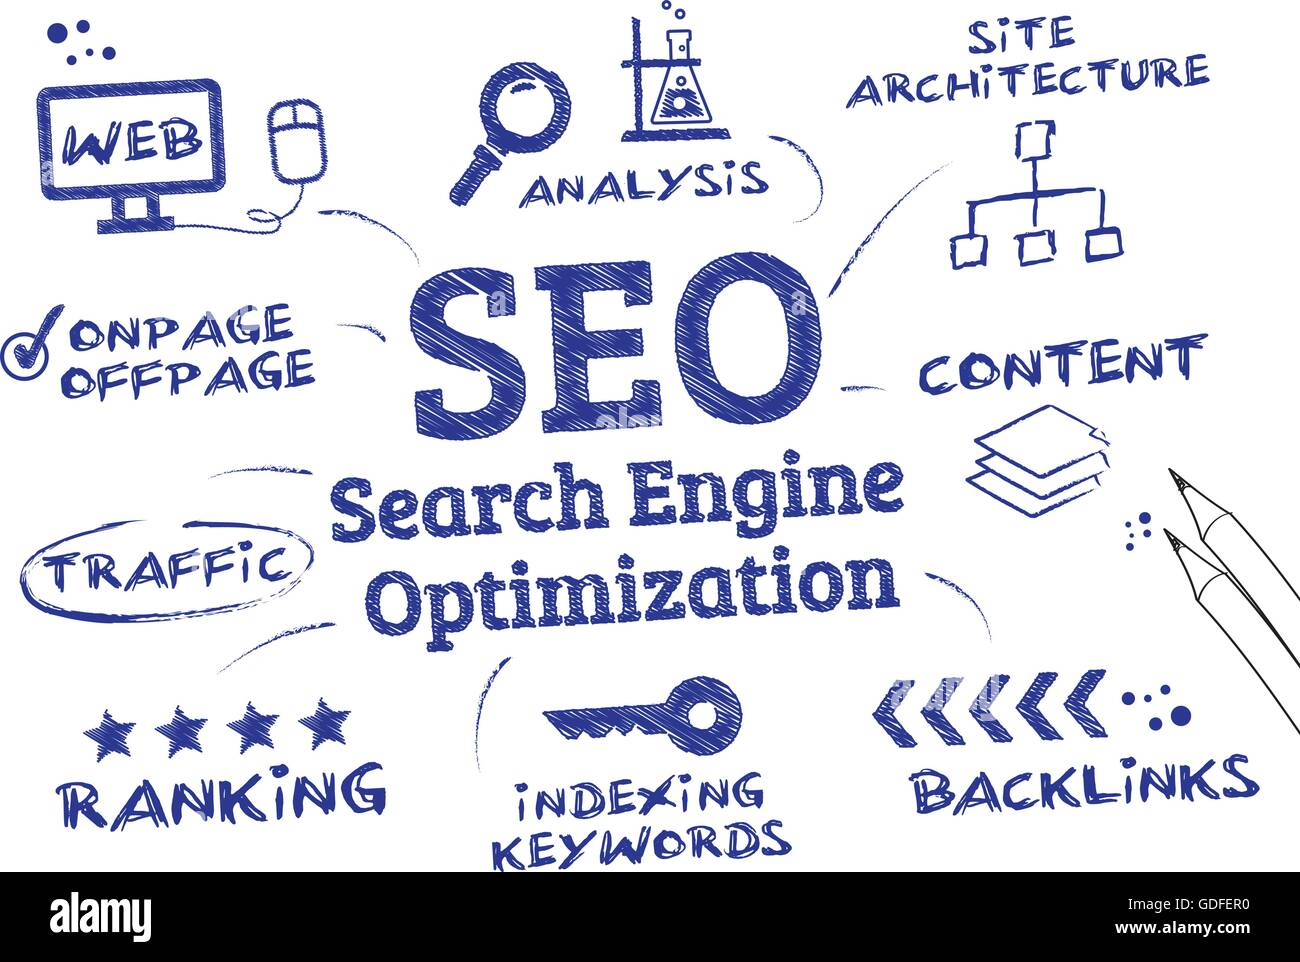 seo - search engine optimization concept. Chart with keywords and icons - Stock Image